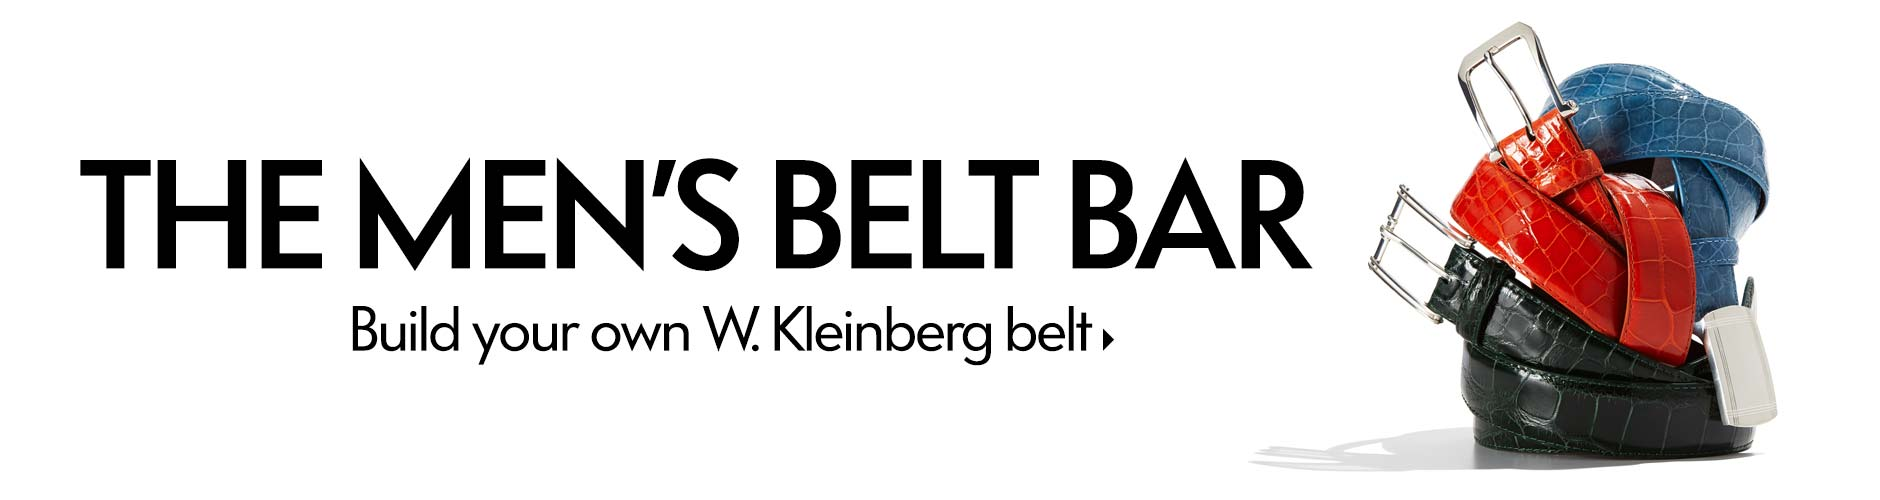 The Men's Belt Bar